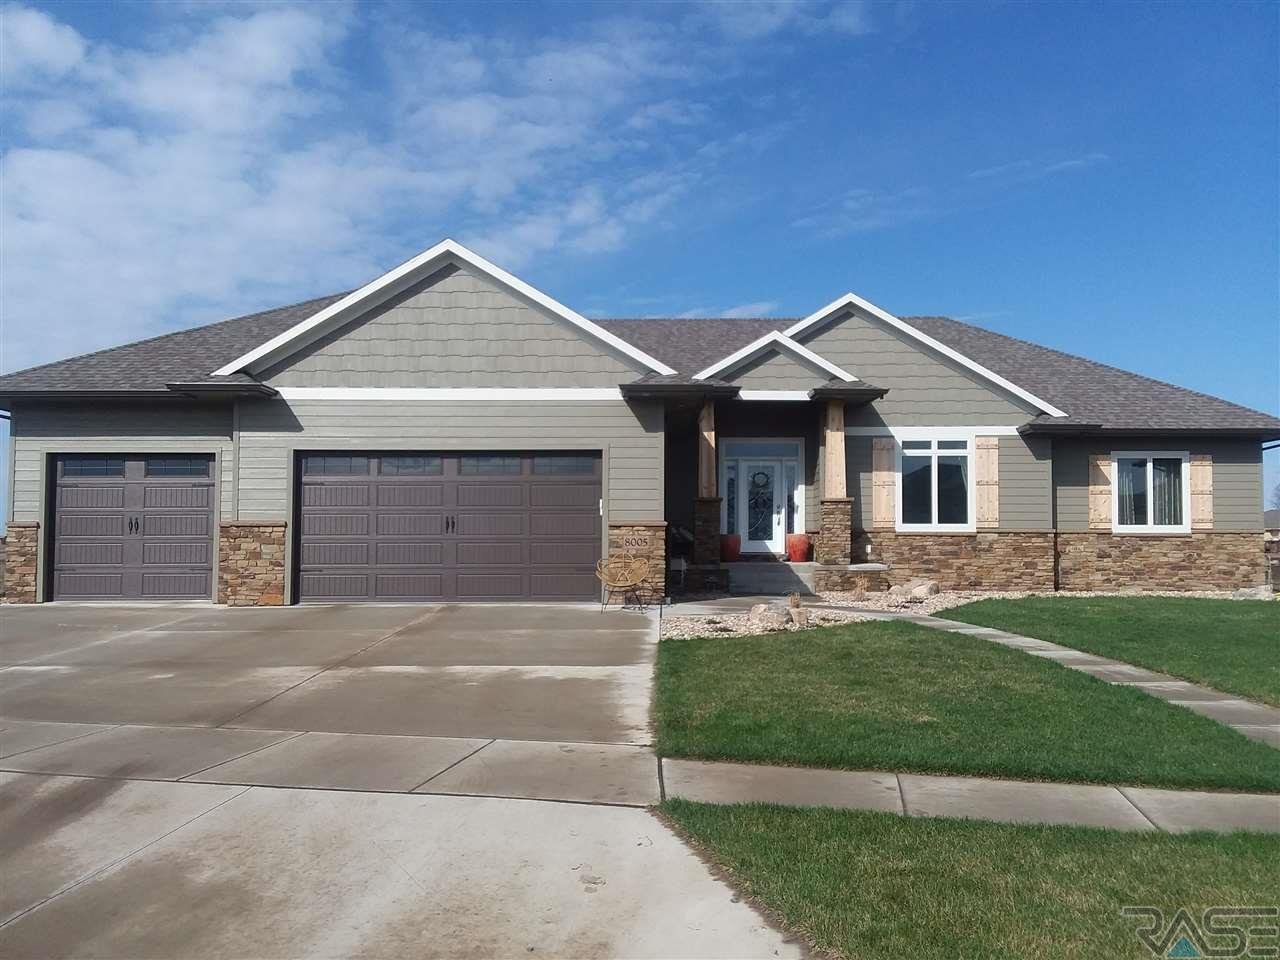 Property for sale at 8005 S Pinewood Ave, Sioux Falls,  SD 57108